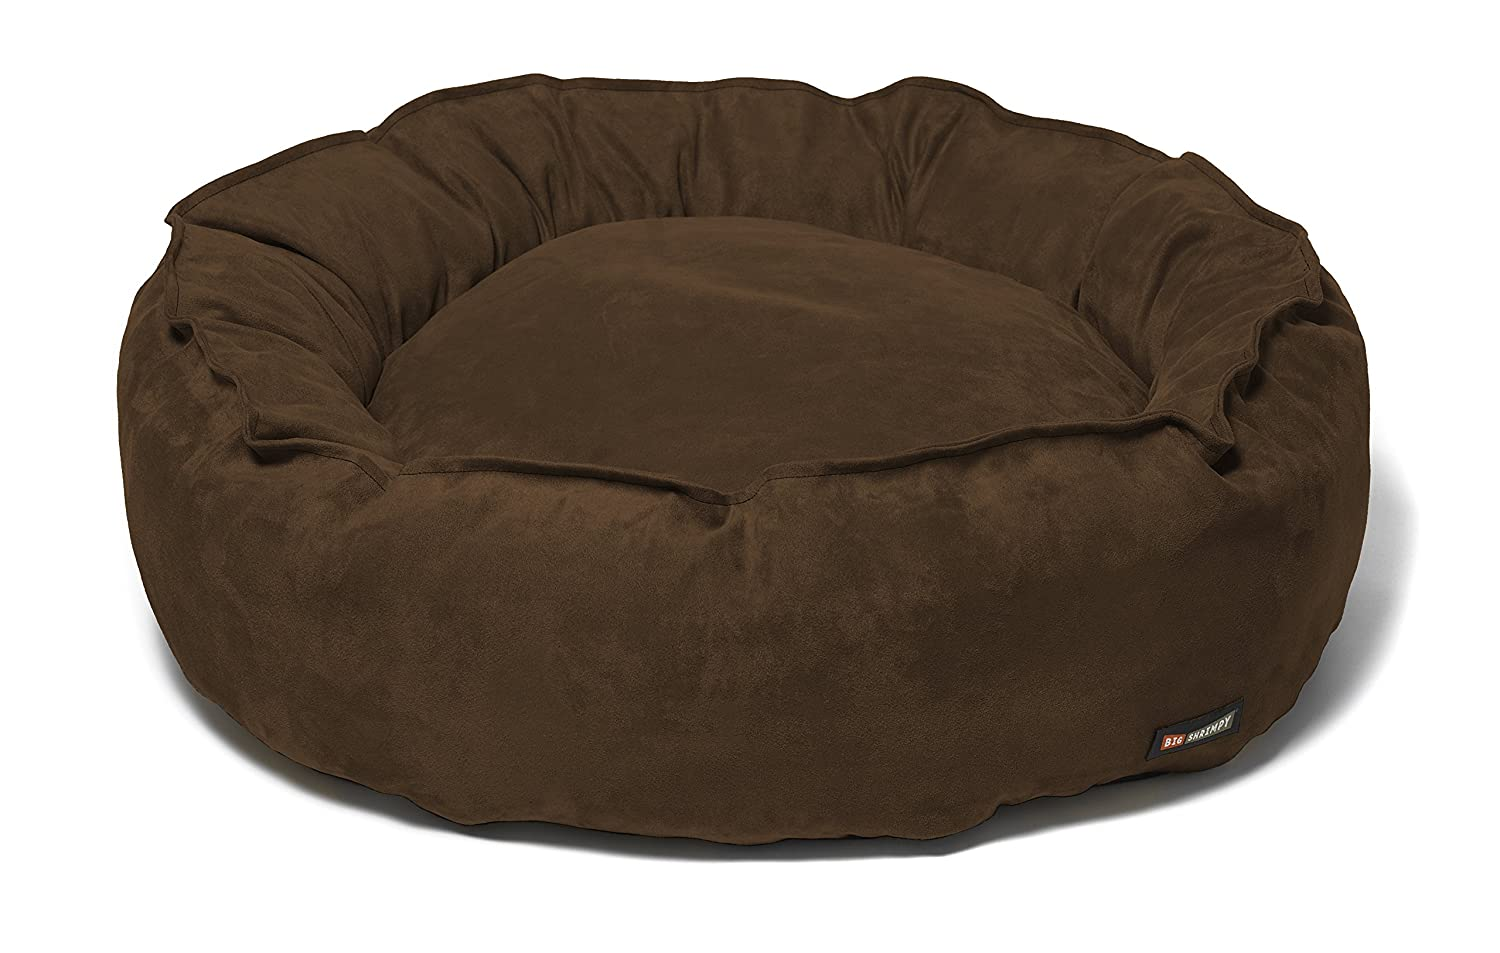 Big Shrimpy 7244 Nest Faux Bed, Medium, Truffle Suede